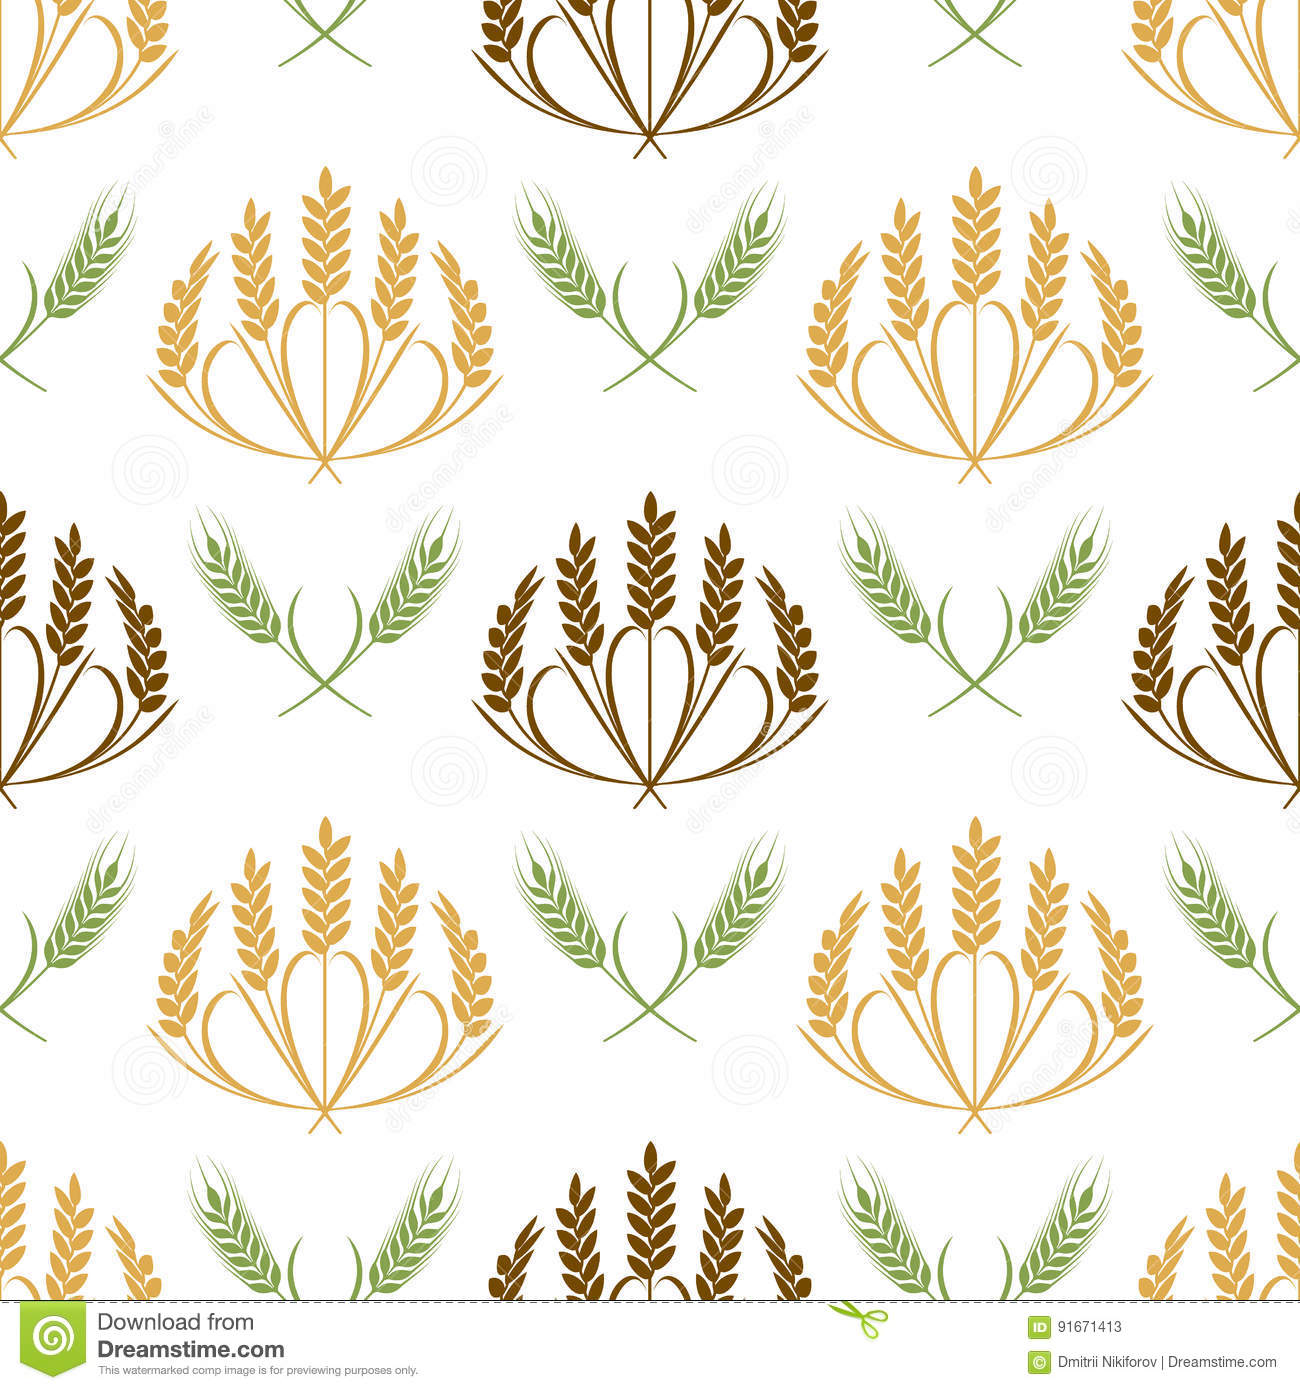 vector ears of wheat and grains seamless pattern illustration stock